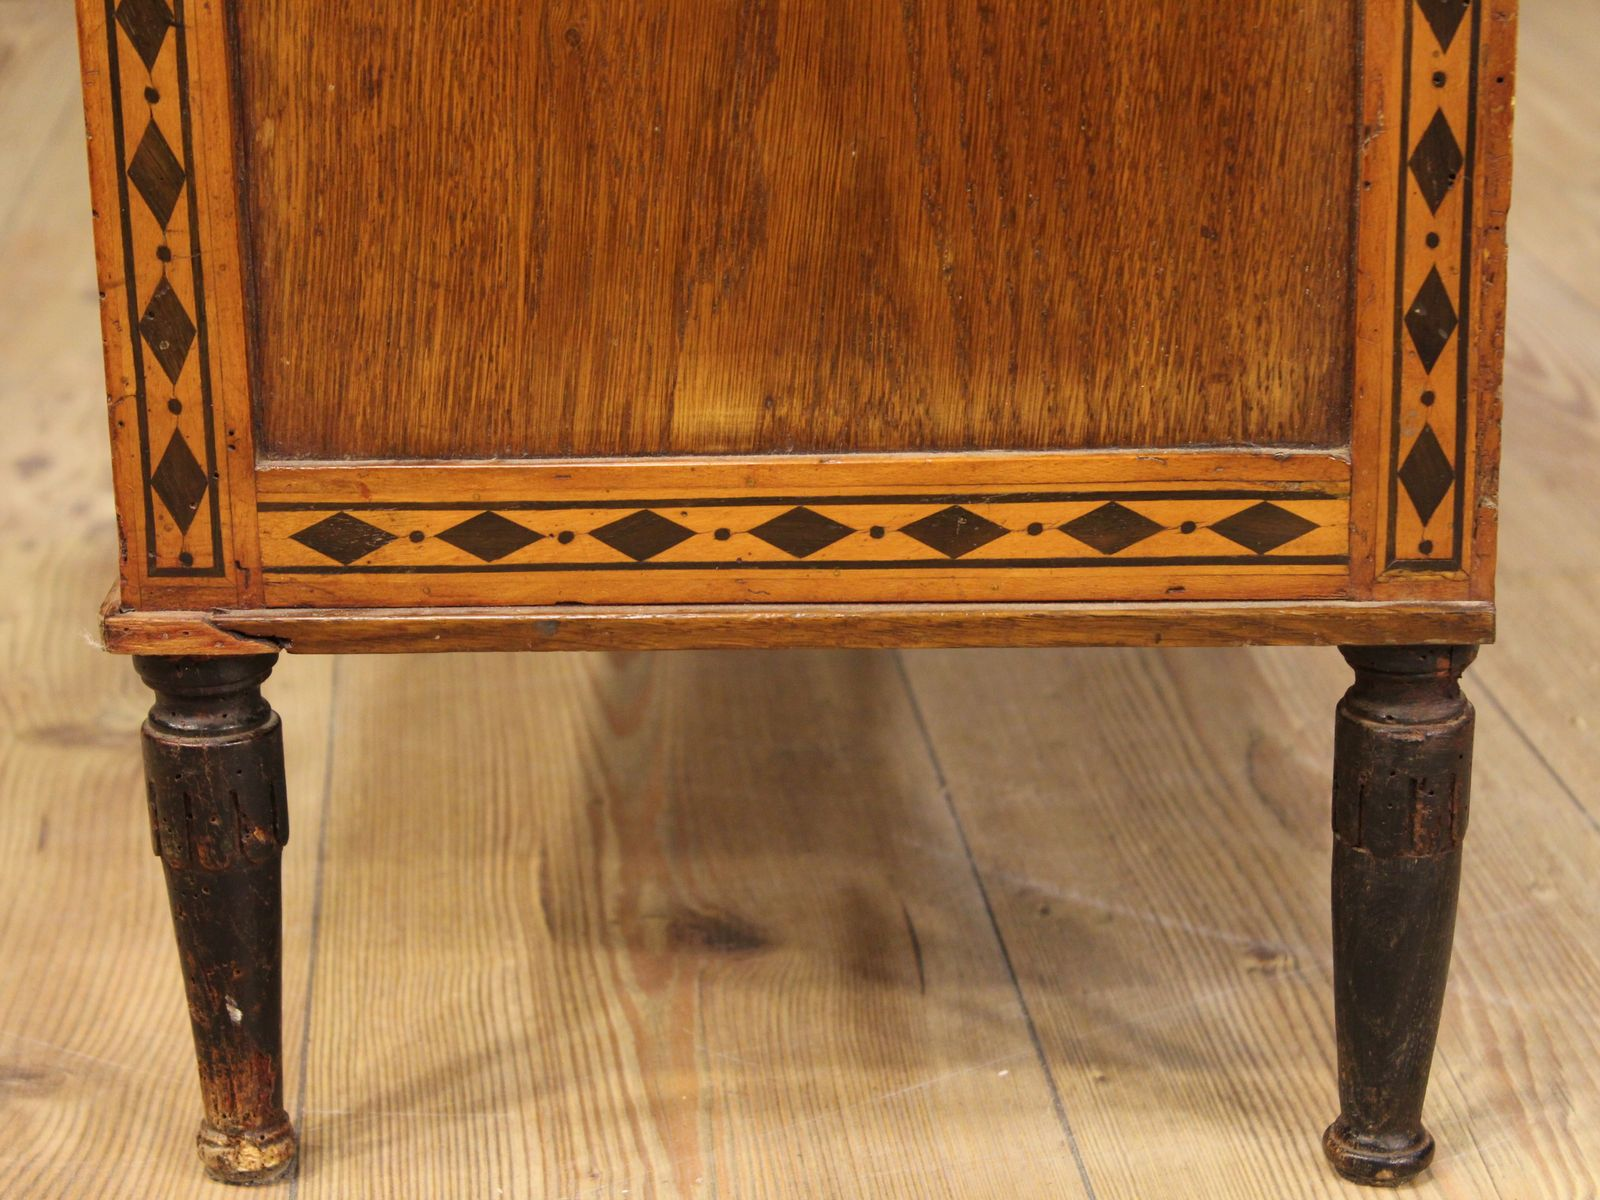 Antique commode chair - On Hold